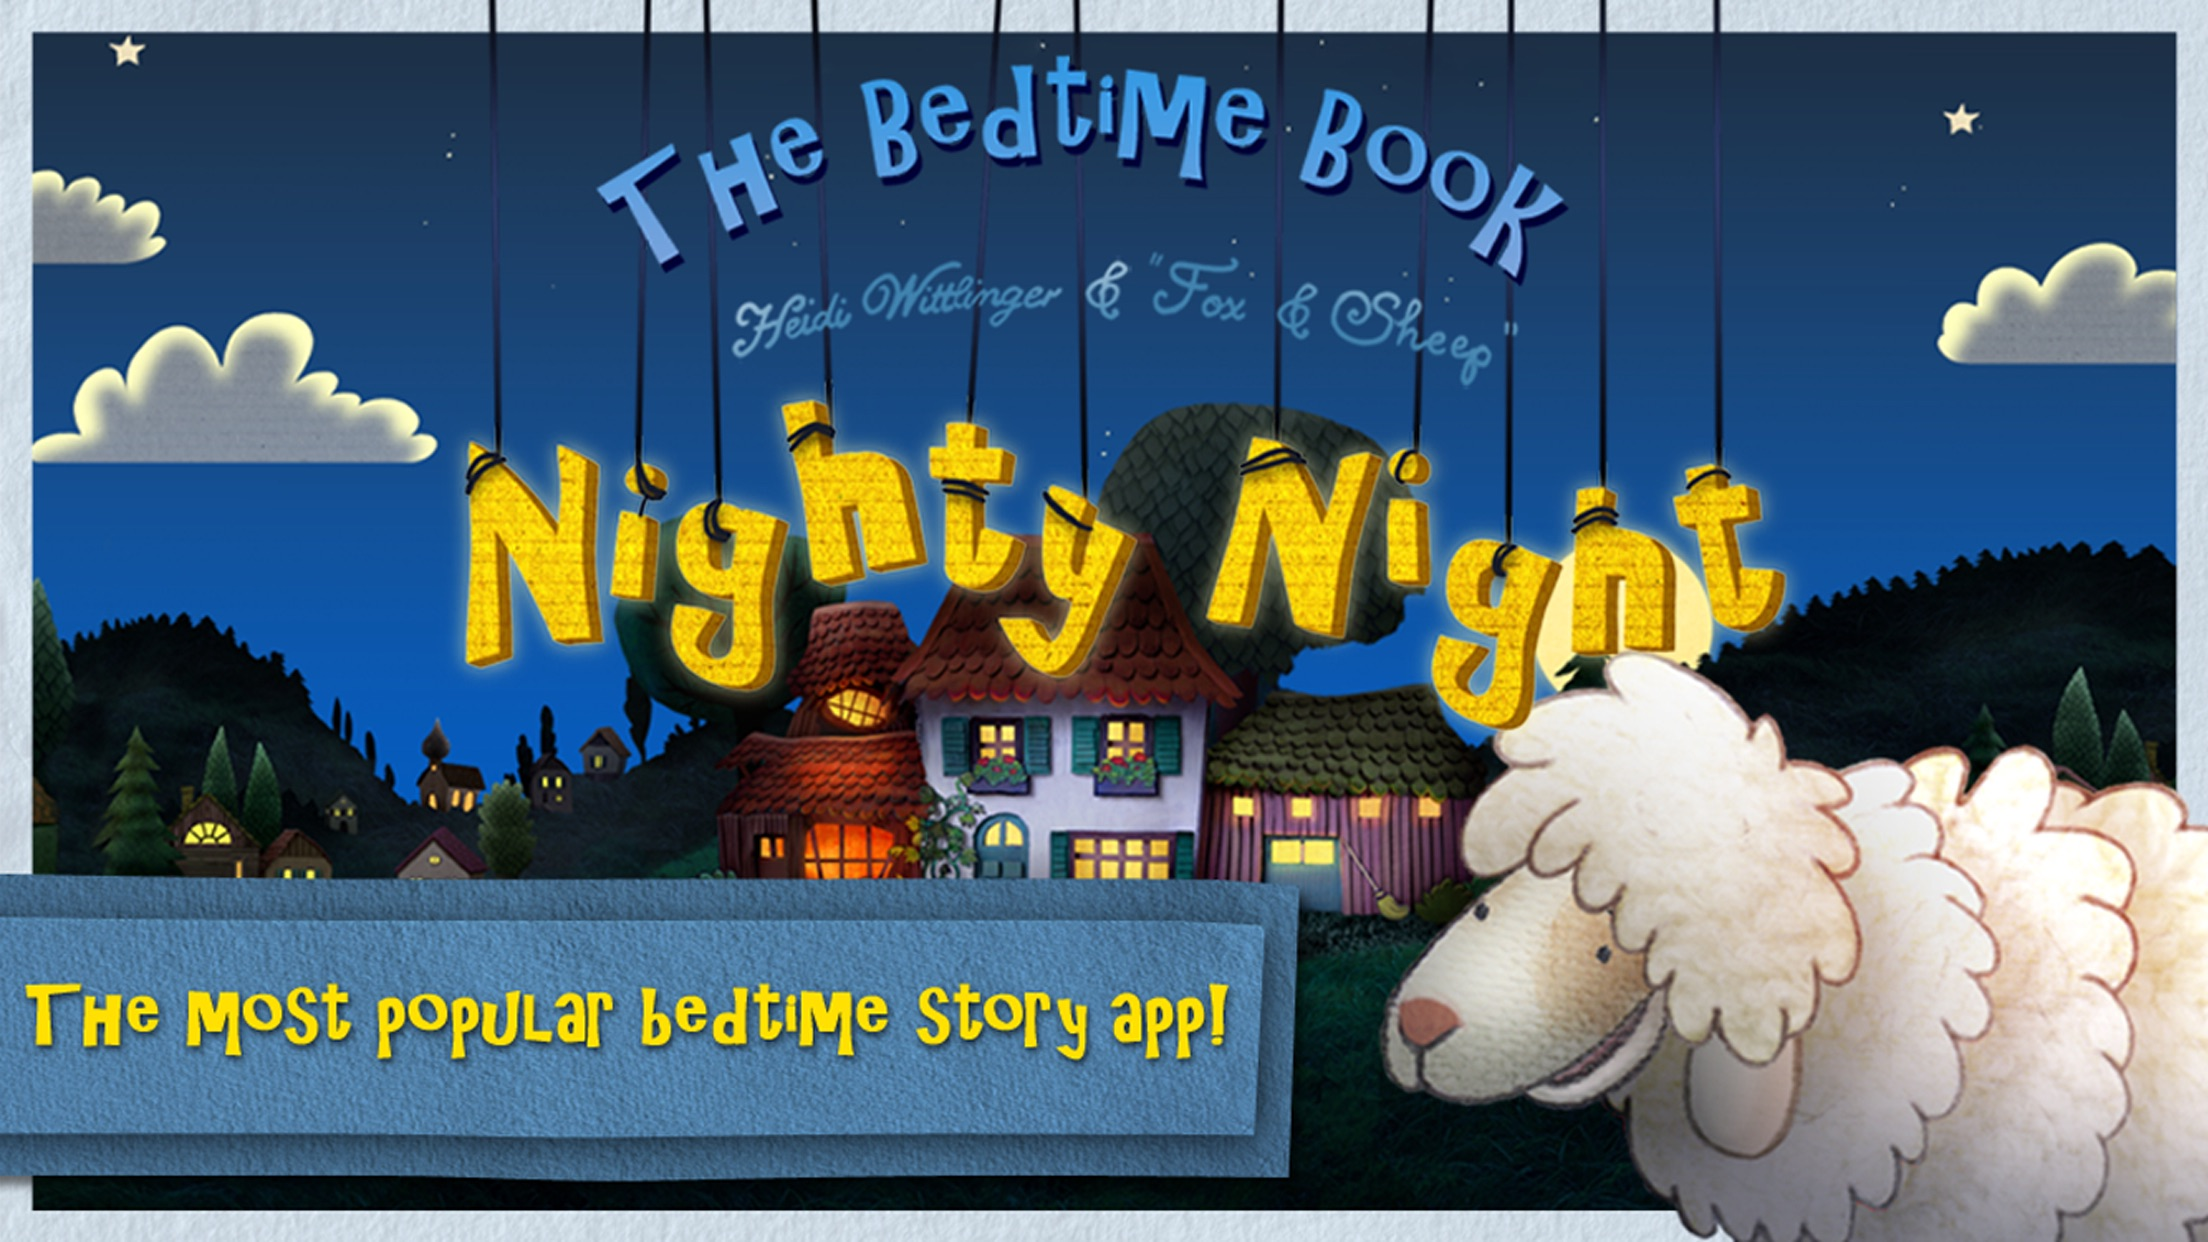 Nighty Night! - The bedtime story app for children Screenshot